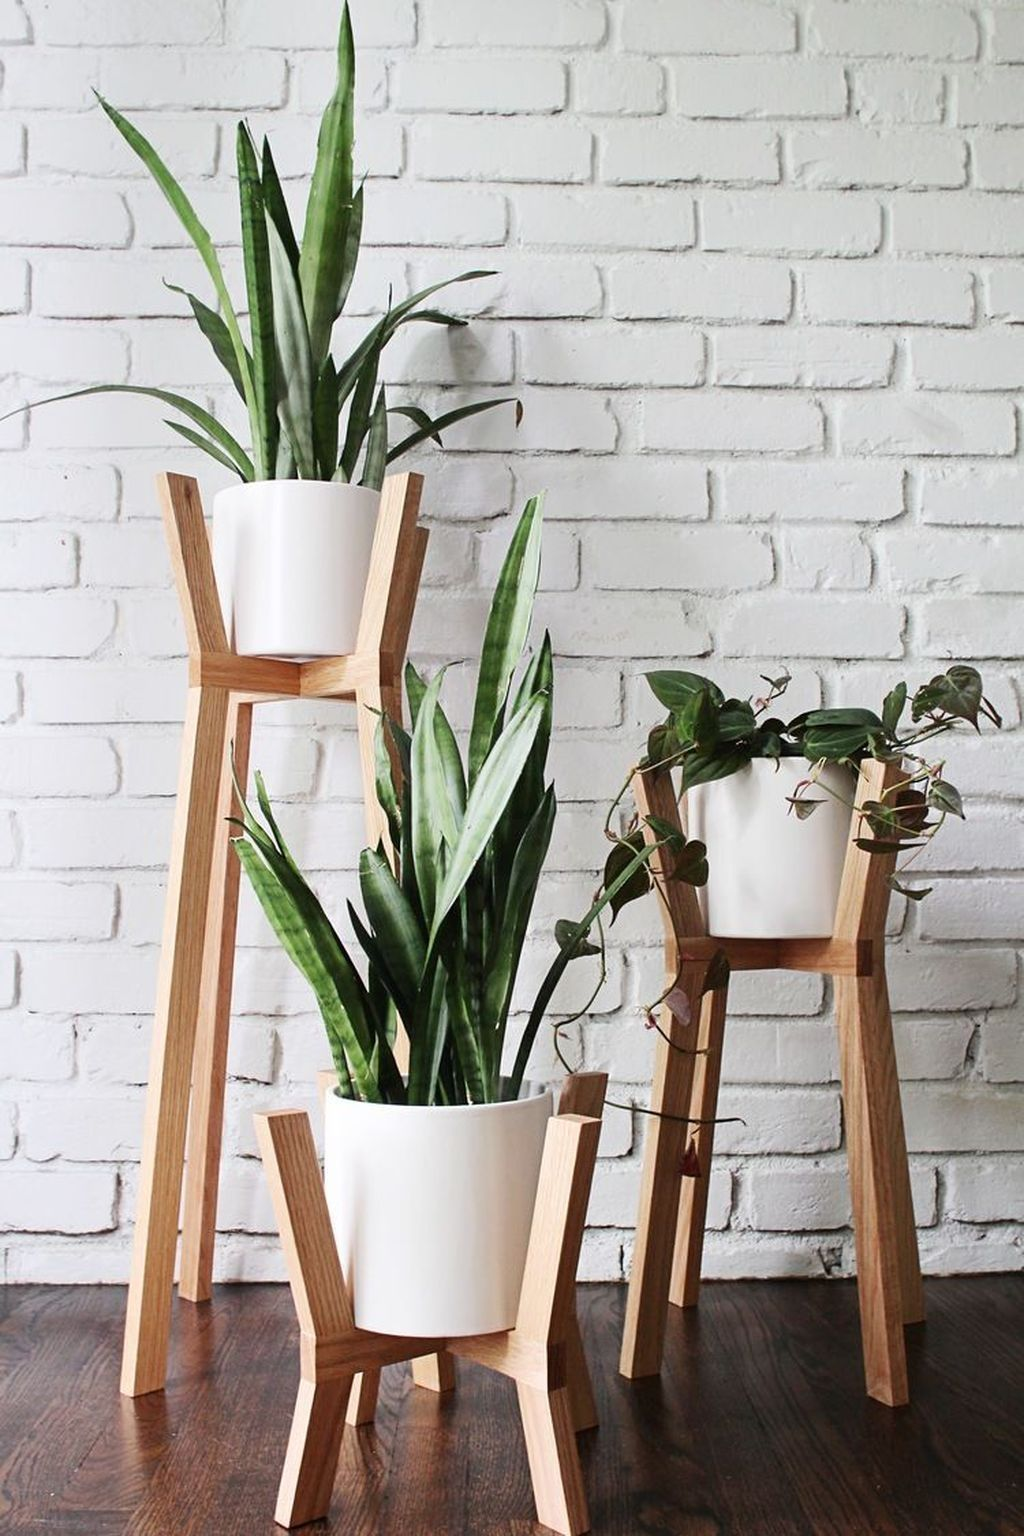 10 Diy Plant Stand Ideas For An Outdoor And Indoor